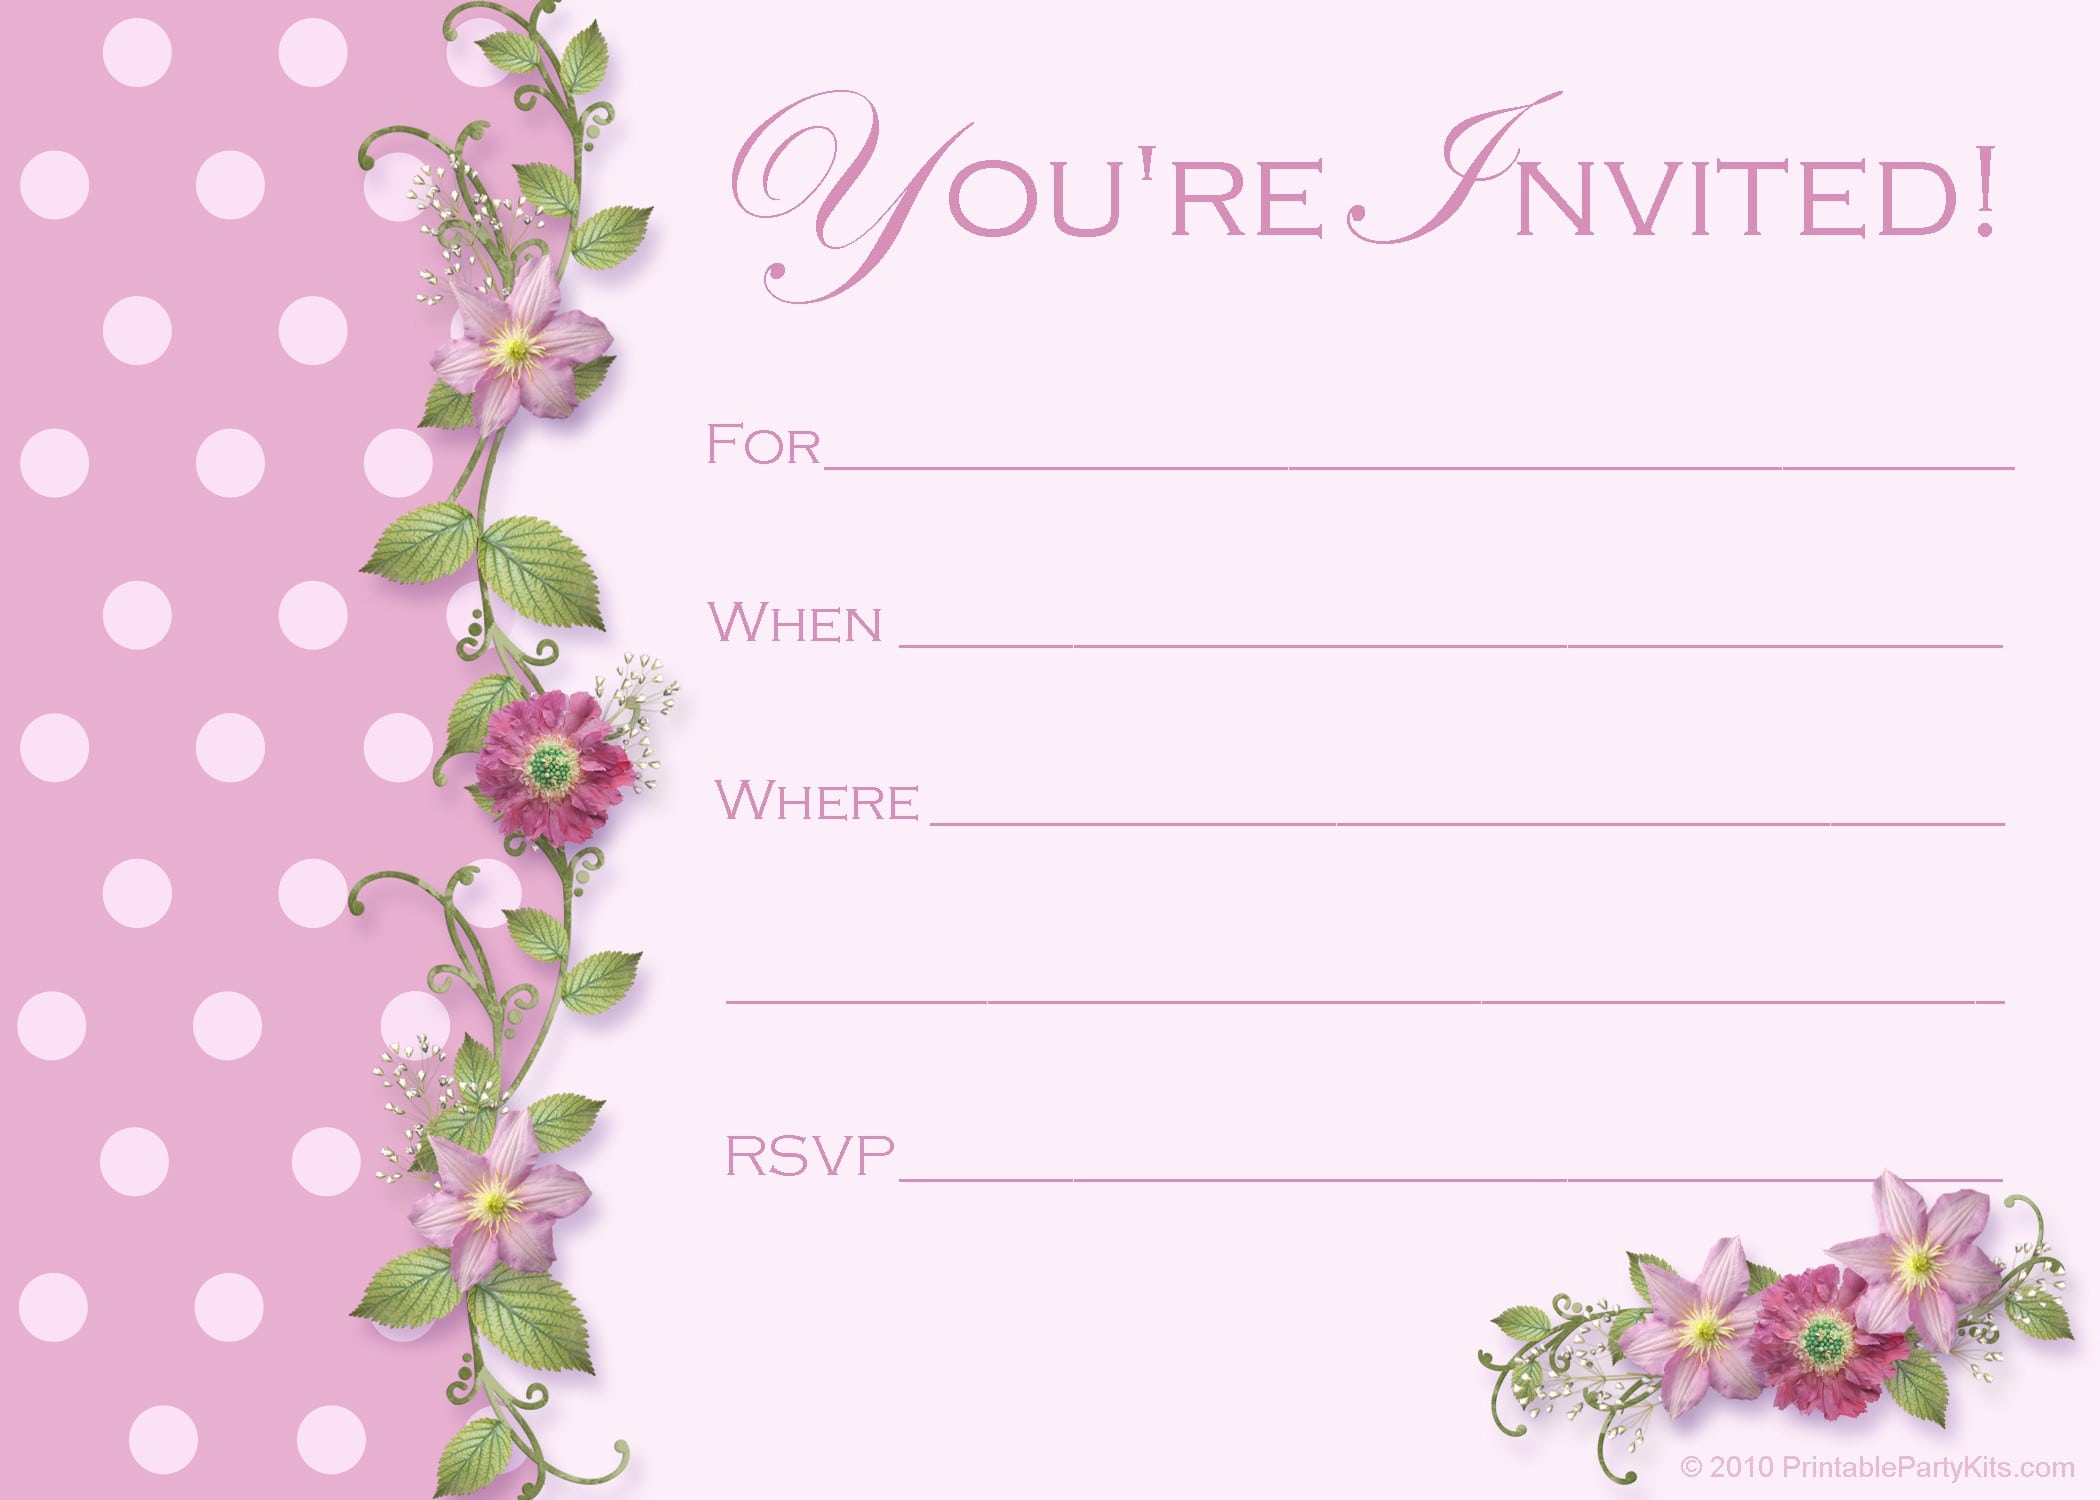 Printable Free Birthday Party Invitations printable calendar – Free Birthday Template Invitations